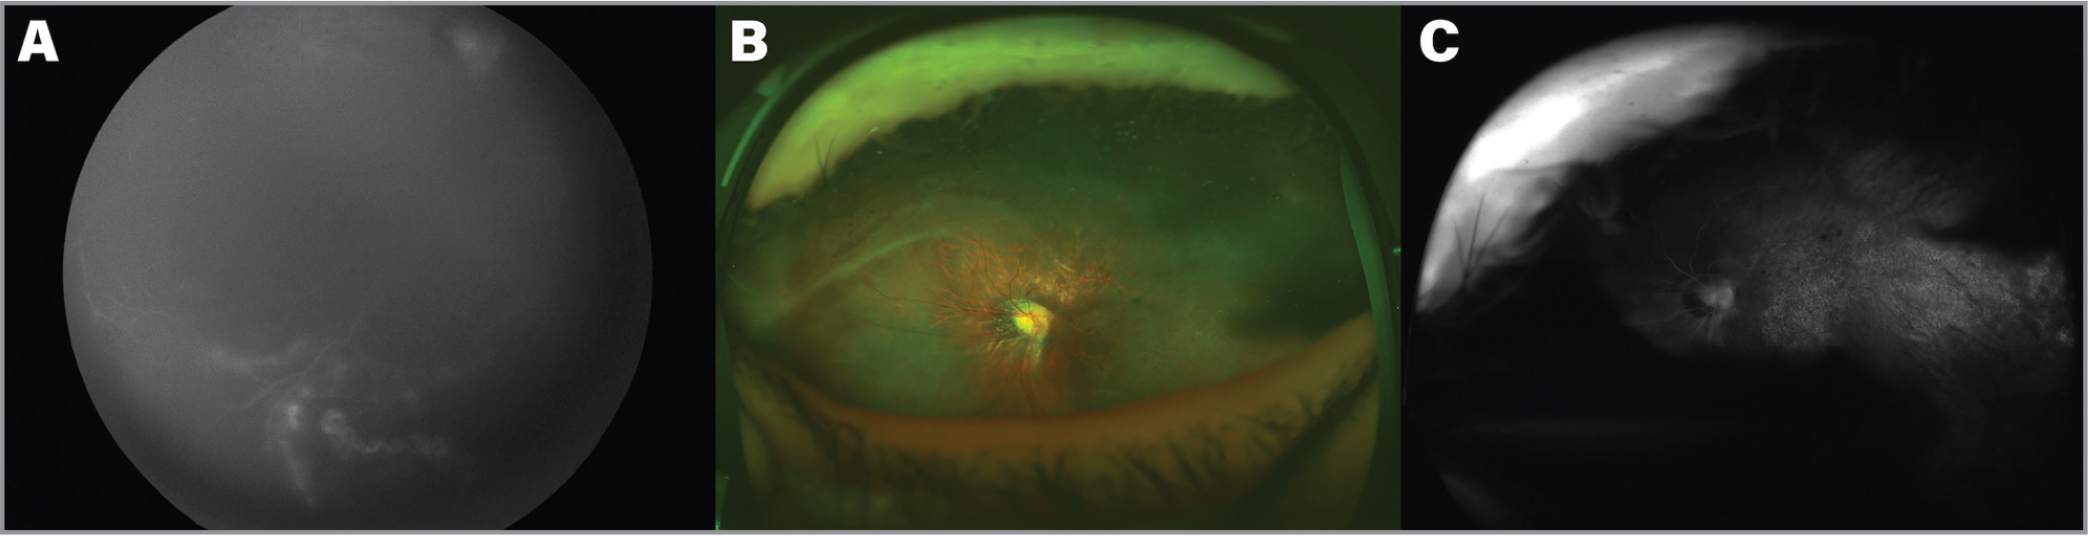 Retinal features of the right eye in a 14-year-old male (Patient 3) with Pierson syndrome. (A) Retcam fluorescein angiography (FA) showing mid-peripheral fluorescein leakage superonasally for which laser photocoagulation was performed. (B) Fundus photograph 2 years after laser treatment showing a tessellated fundus, typical optic disc changes with parapapillary atrophy, avascular retina, aberrant course of temporal arcades, and straightening of nasal retinal vessels. Note the laser photocoagulation marks at the superonasal retina. (C) FA of the right eye showing no active retinal neovascularization.